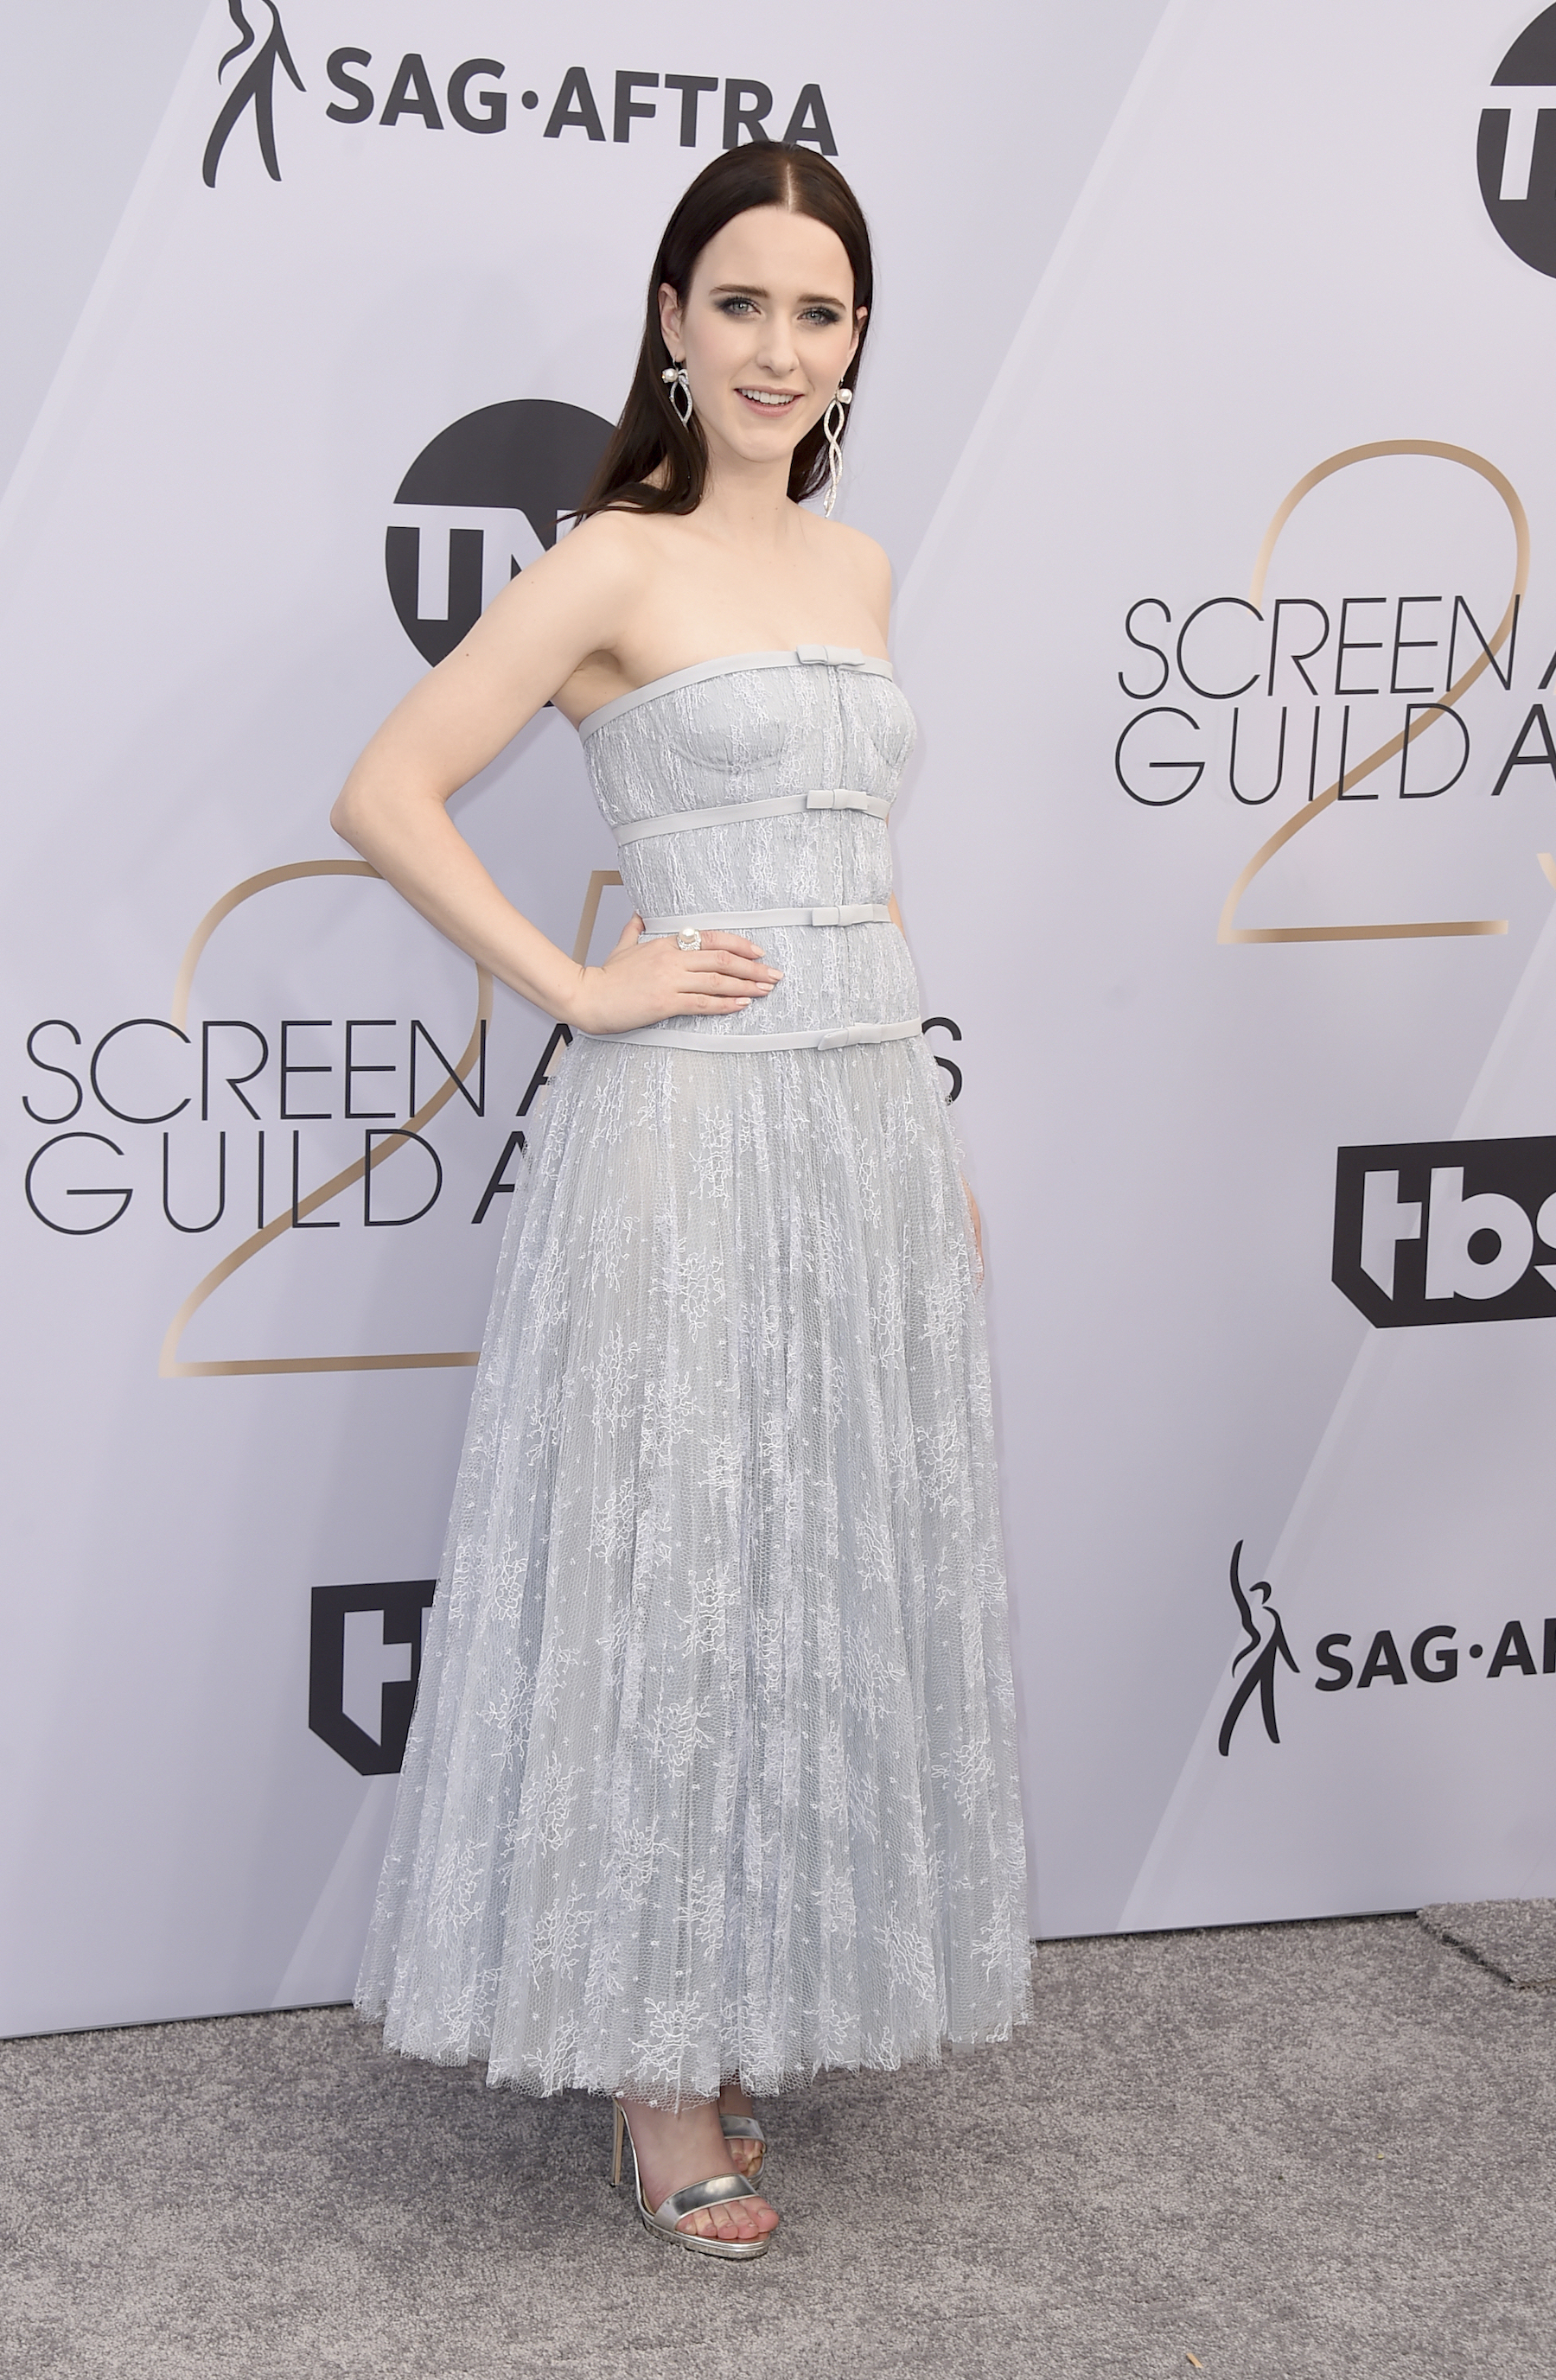 "<div class=""meta image-caption""><div class=""origin-logo origin-image ap""><span>AP</span></div><span class=""caption-text"">Rachel Brosnahan arrives at the 25th annual Screen Actors Guild Awards at the Shrine Auditorium & Expo Hall on Sunday, Jan. 27, 2019, in Los Angeles. (Jordan Strauss/Invision/AP)</span></div>"